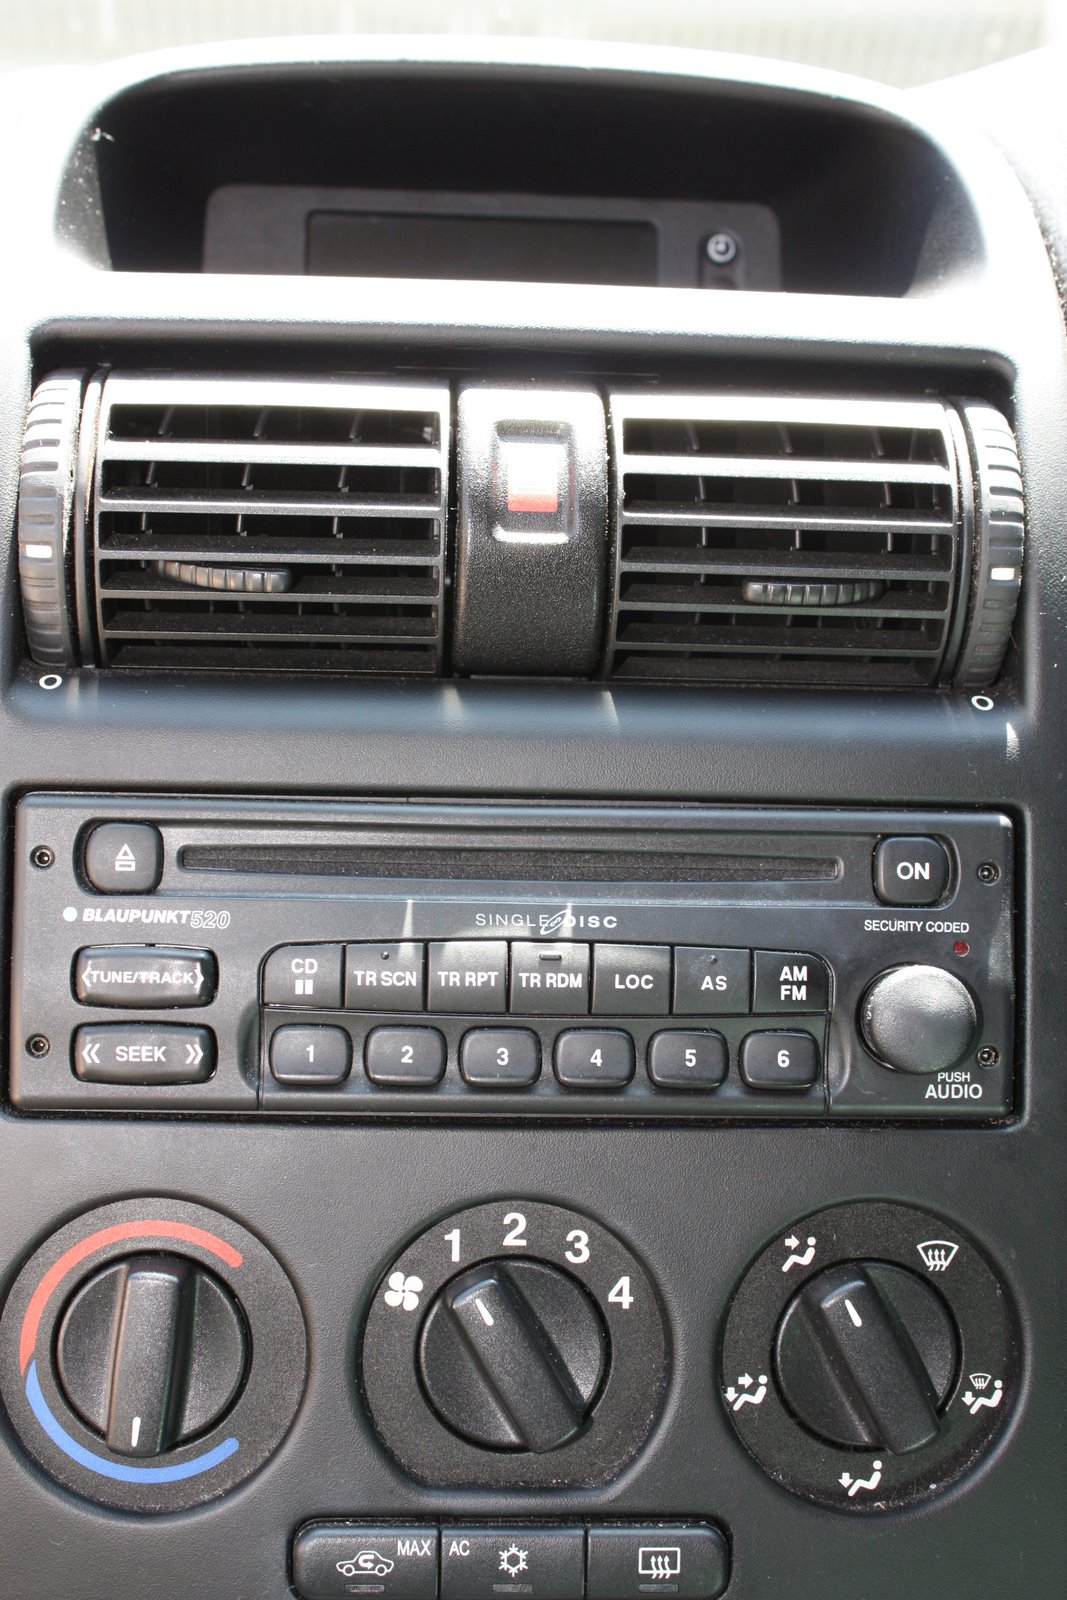 Blaupunkt 420 Wiring Diagram Archive Of Automotive Bt Remove A 520 Car Stereo Head Unit From 2005 Astra Rh Funhello Com